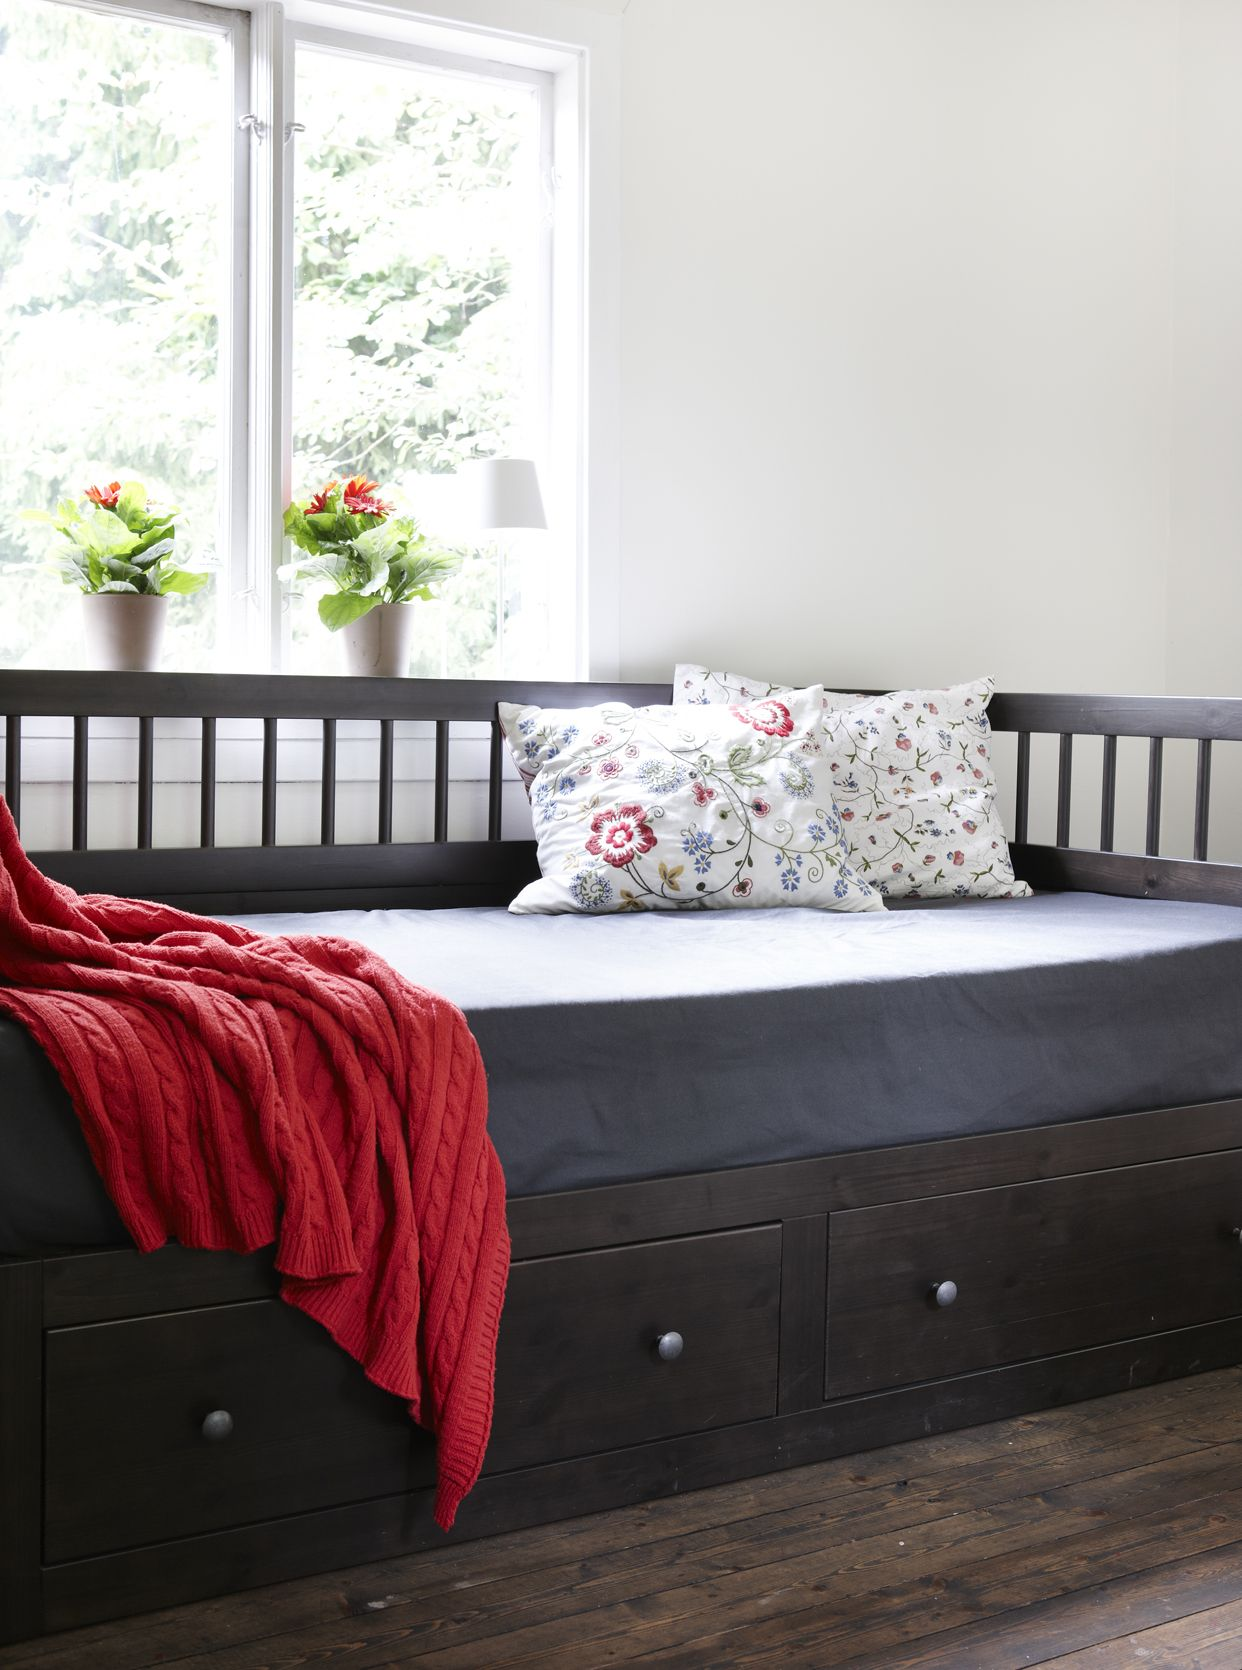 Beds For Studio Apartments Trundle Bed For The Guest Room Office Trundle Beds